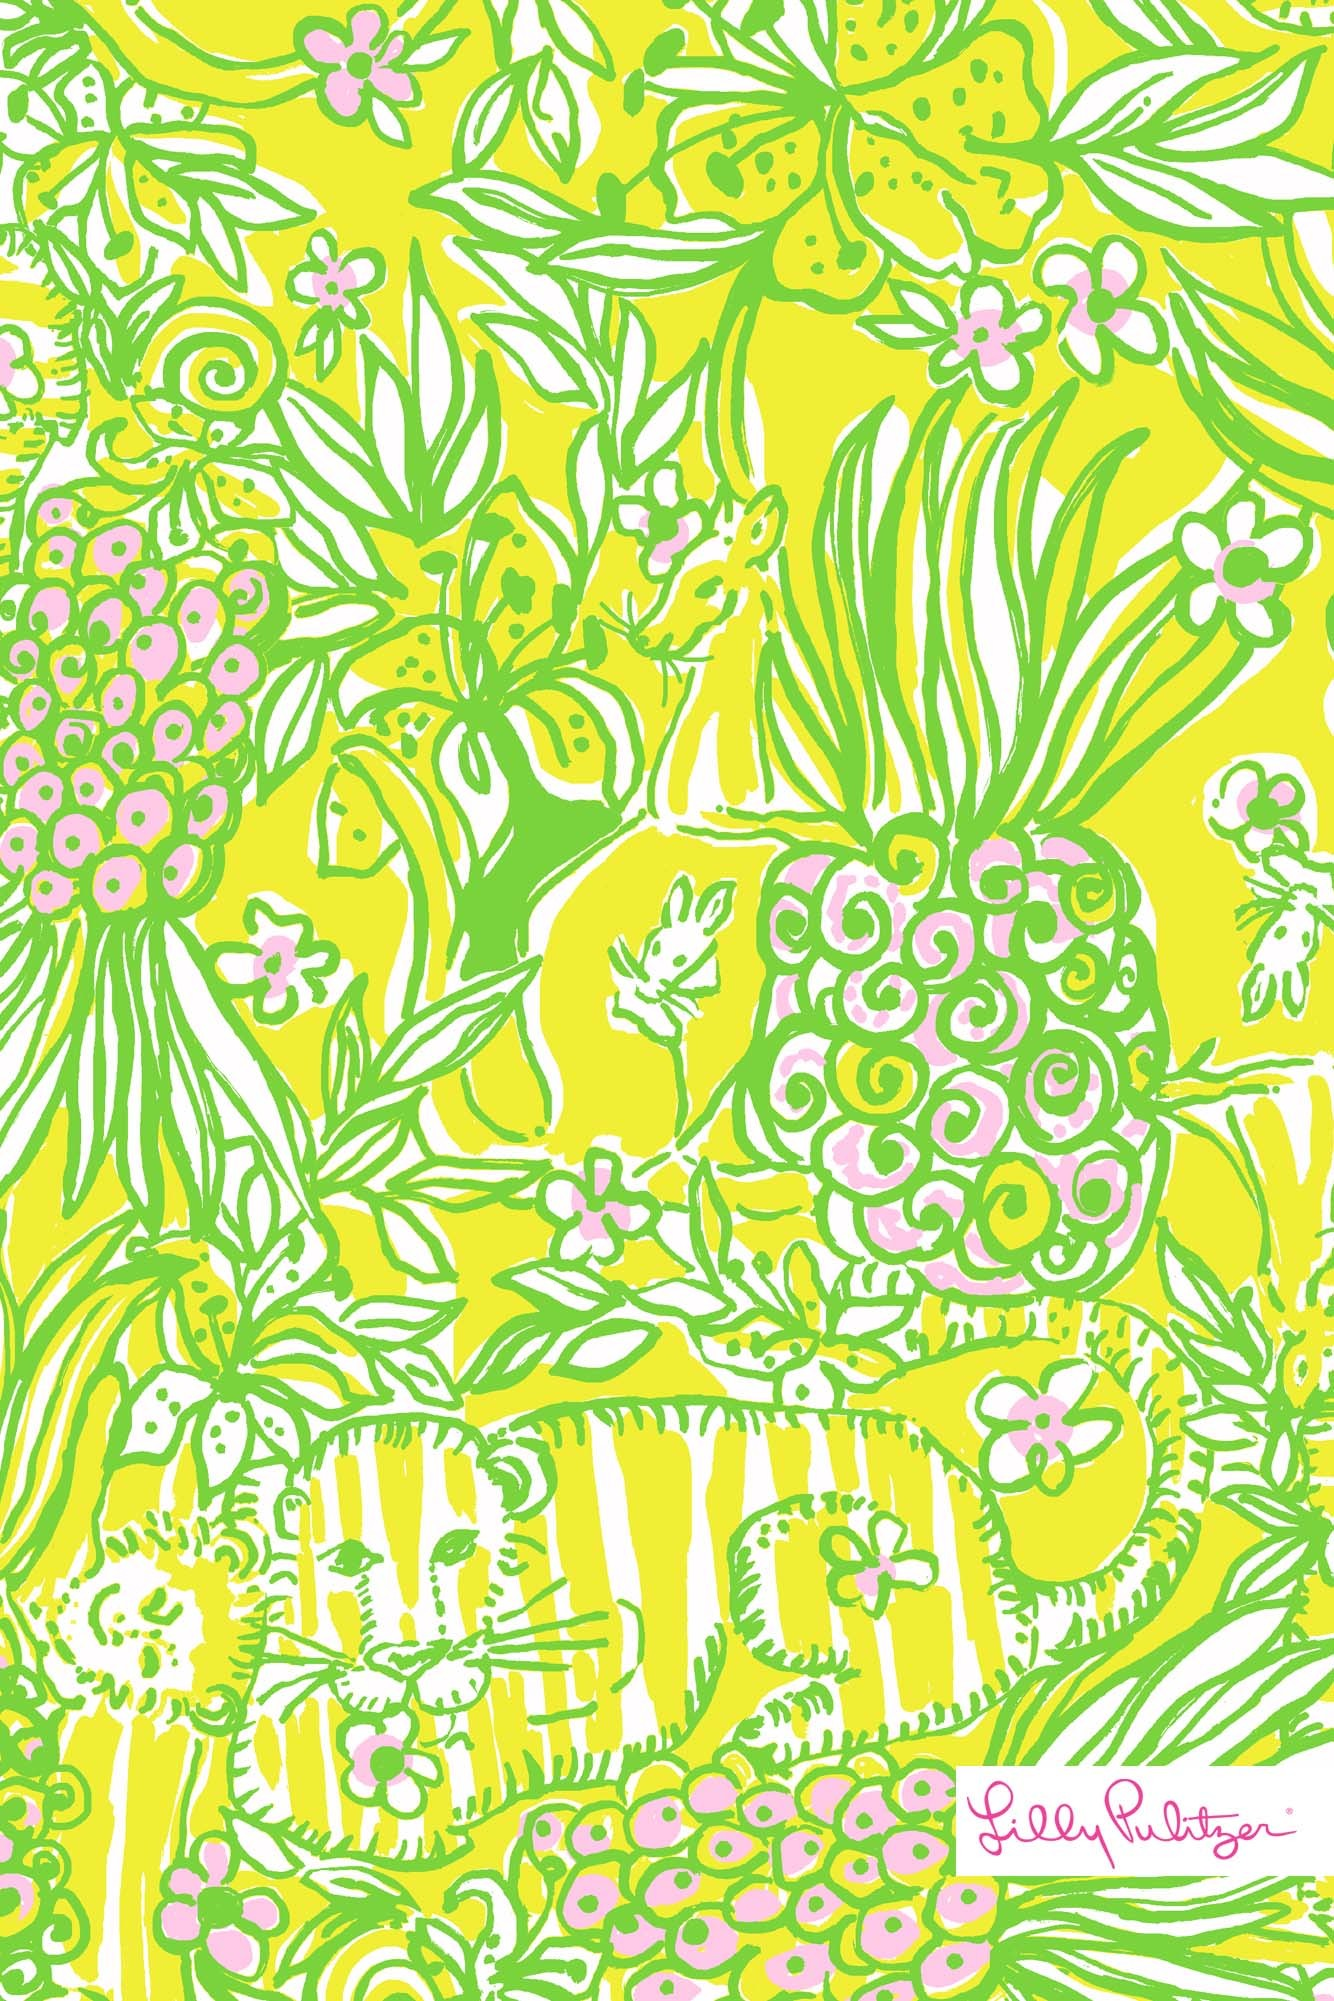 Lilly pulitzer wallpaper desktop 56 images - Lilly pulitzer iphone wallpaper ...